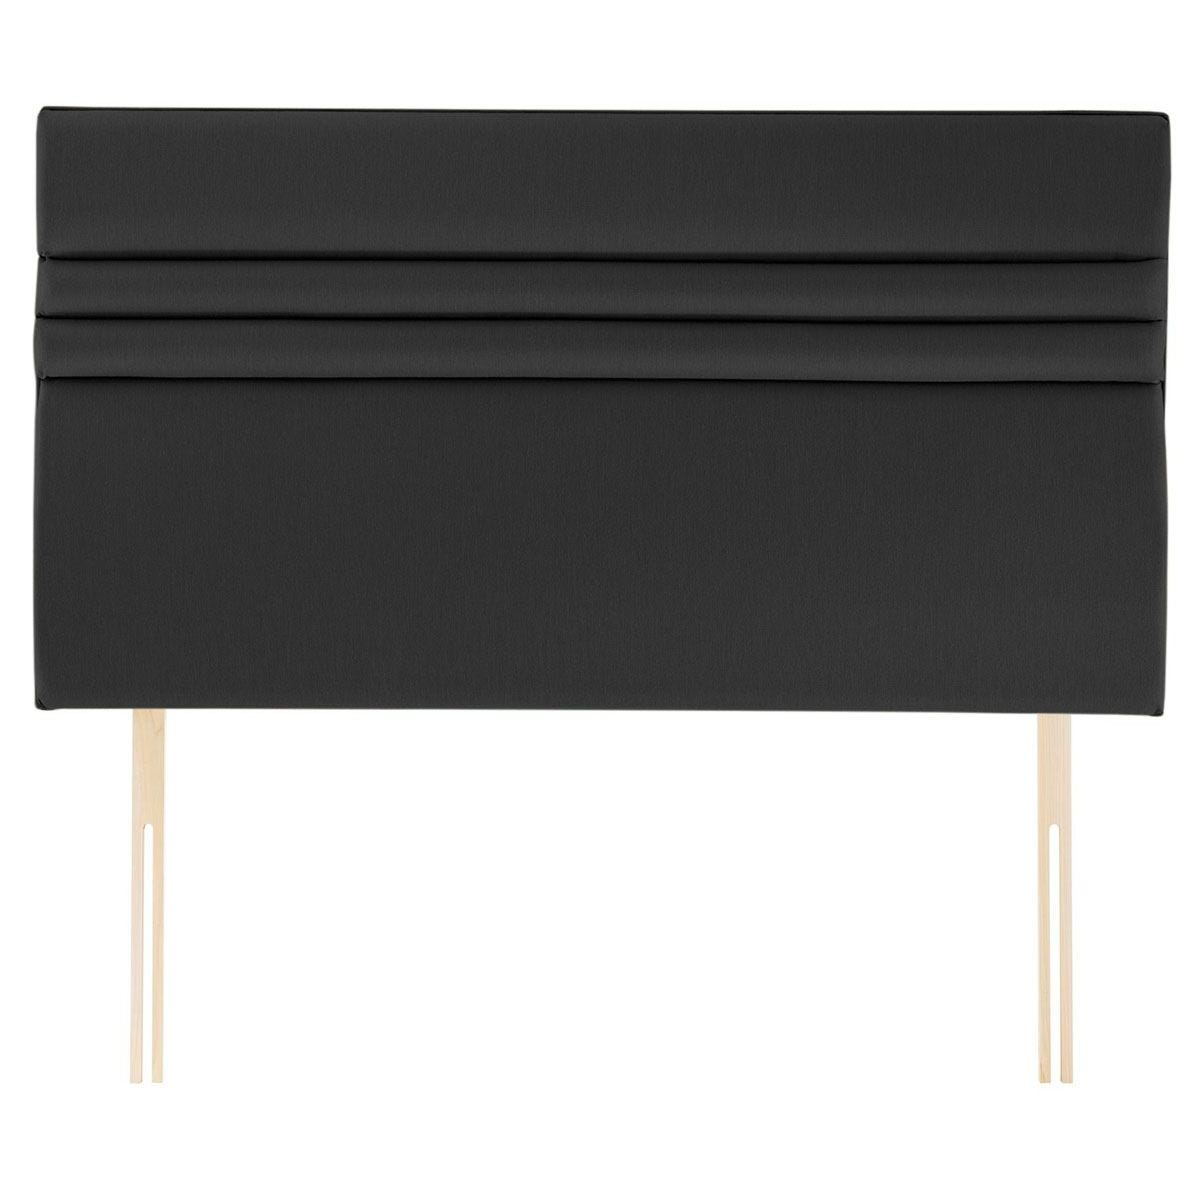 Silentnight Roma Ebony Headboard - Double